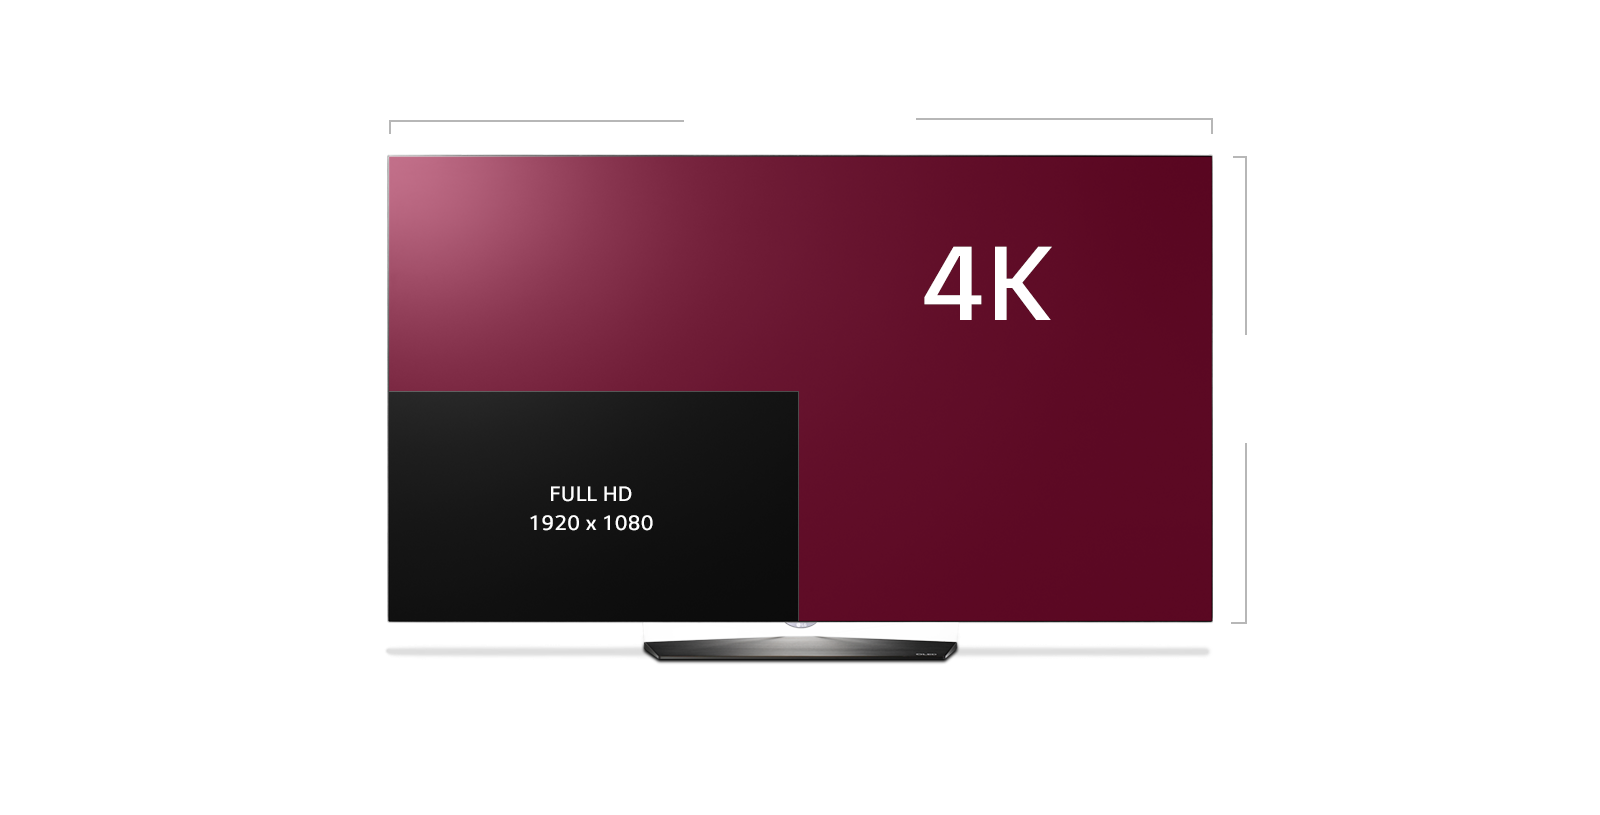 Tv Lg Oled 4k Lg Oled 4k Hdr Smart Tv Oled65e6p Home  # Meuble Tv Violet